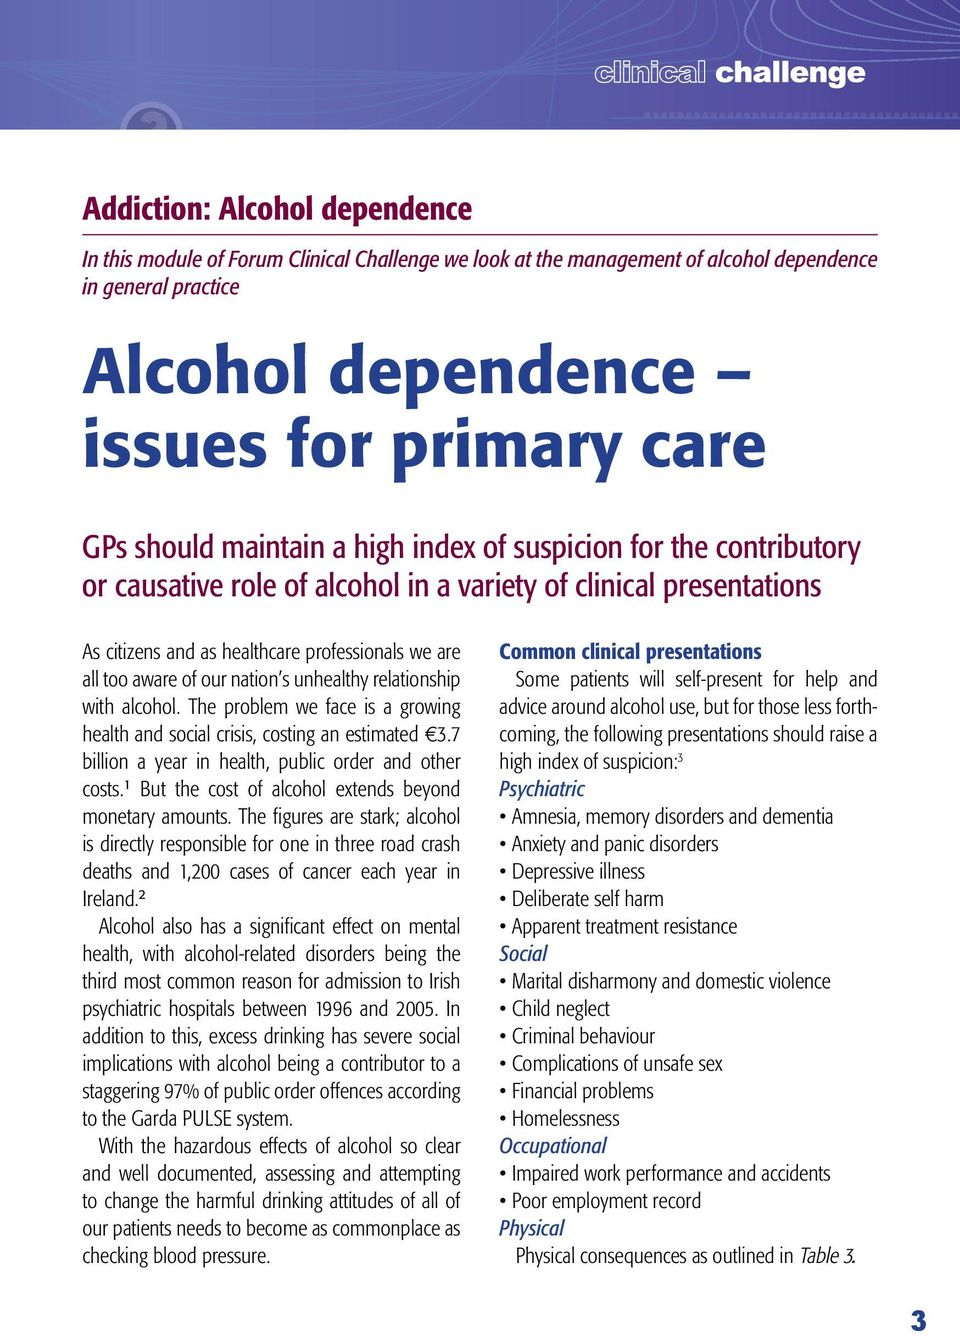 nation s unhealthy relationship with alcohol. The problem we face is a growing health and social crisis, costing an estimated 3.7 billion a year in health, public order and other costs.